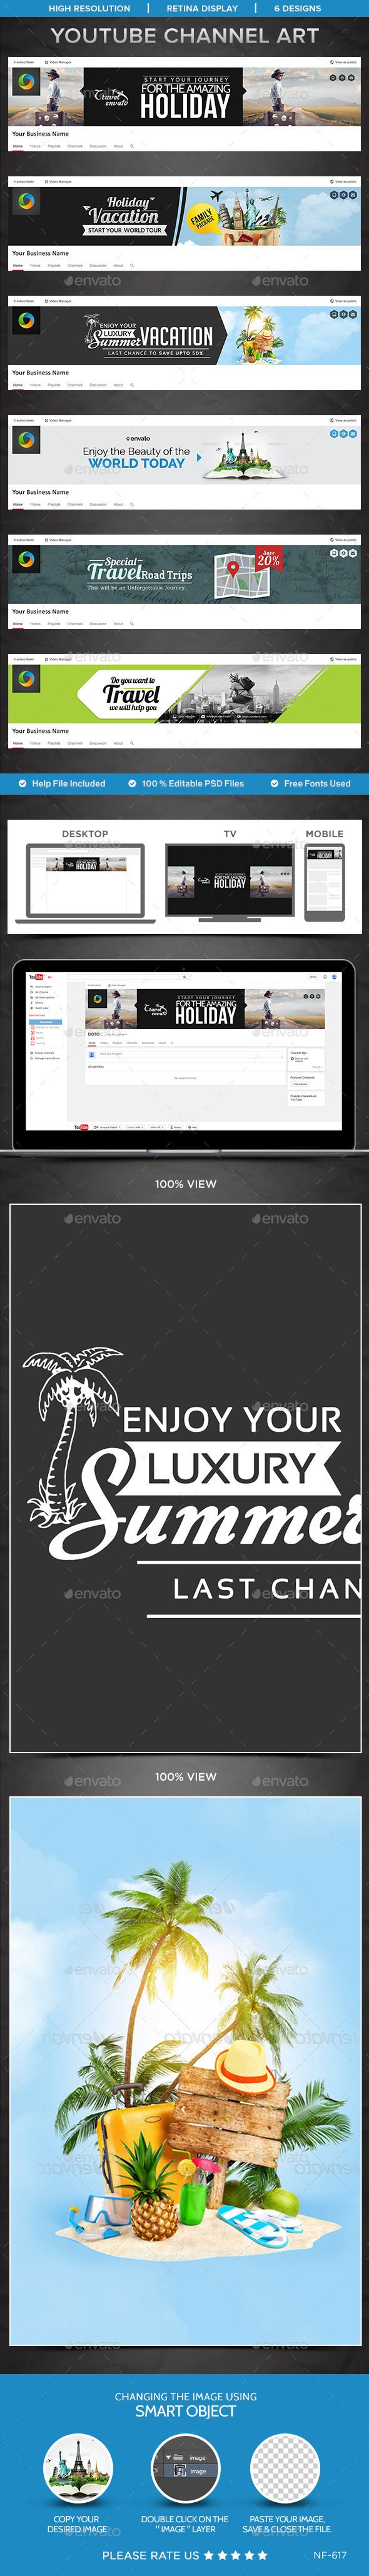 Travel Youtube Channel Art - 6 Designs Template PSD. Download here: http://graphicriver.net/item/travel-youtube-channel-art-6-designs/12800648?ref=ksioks